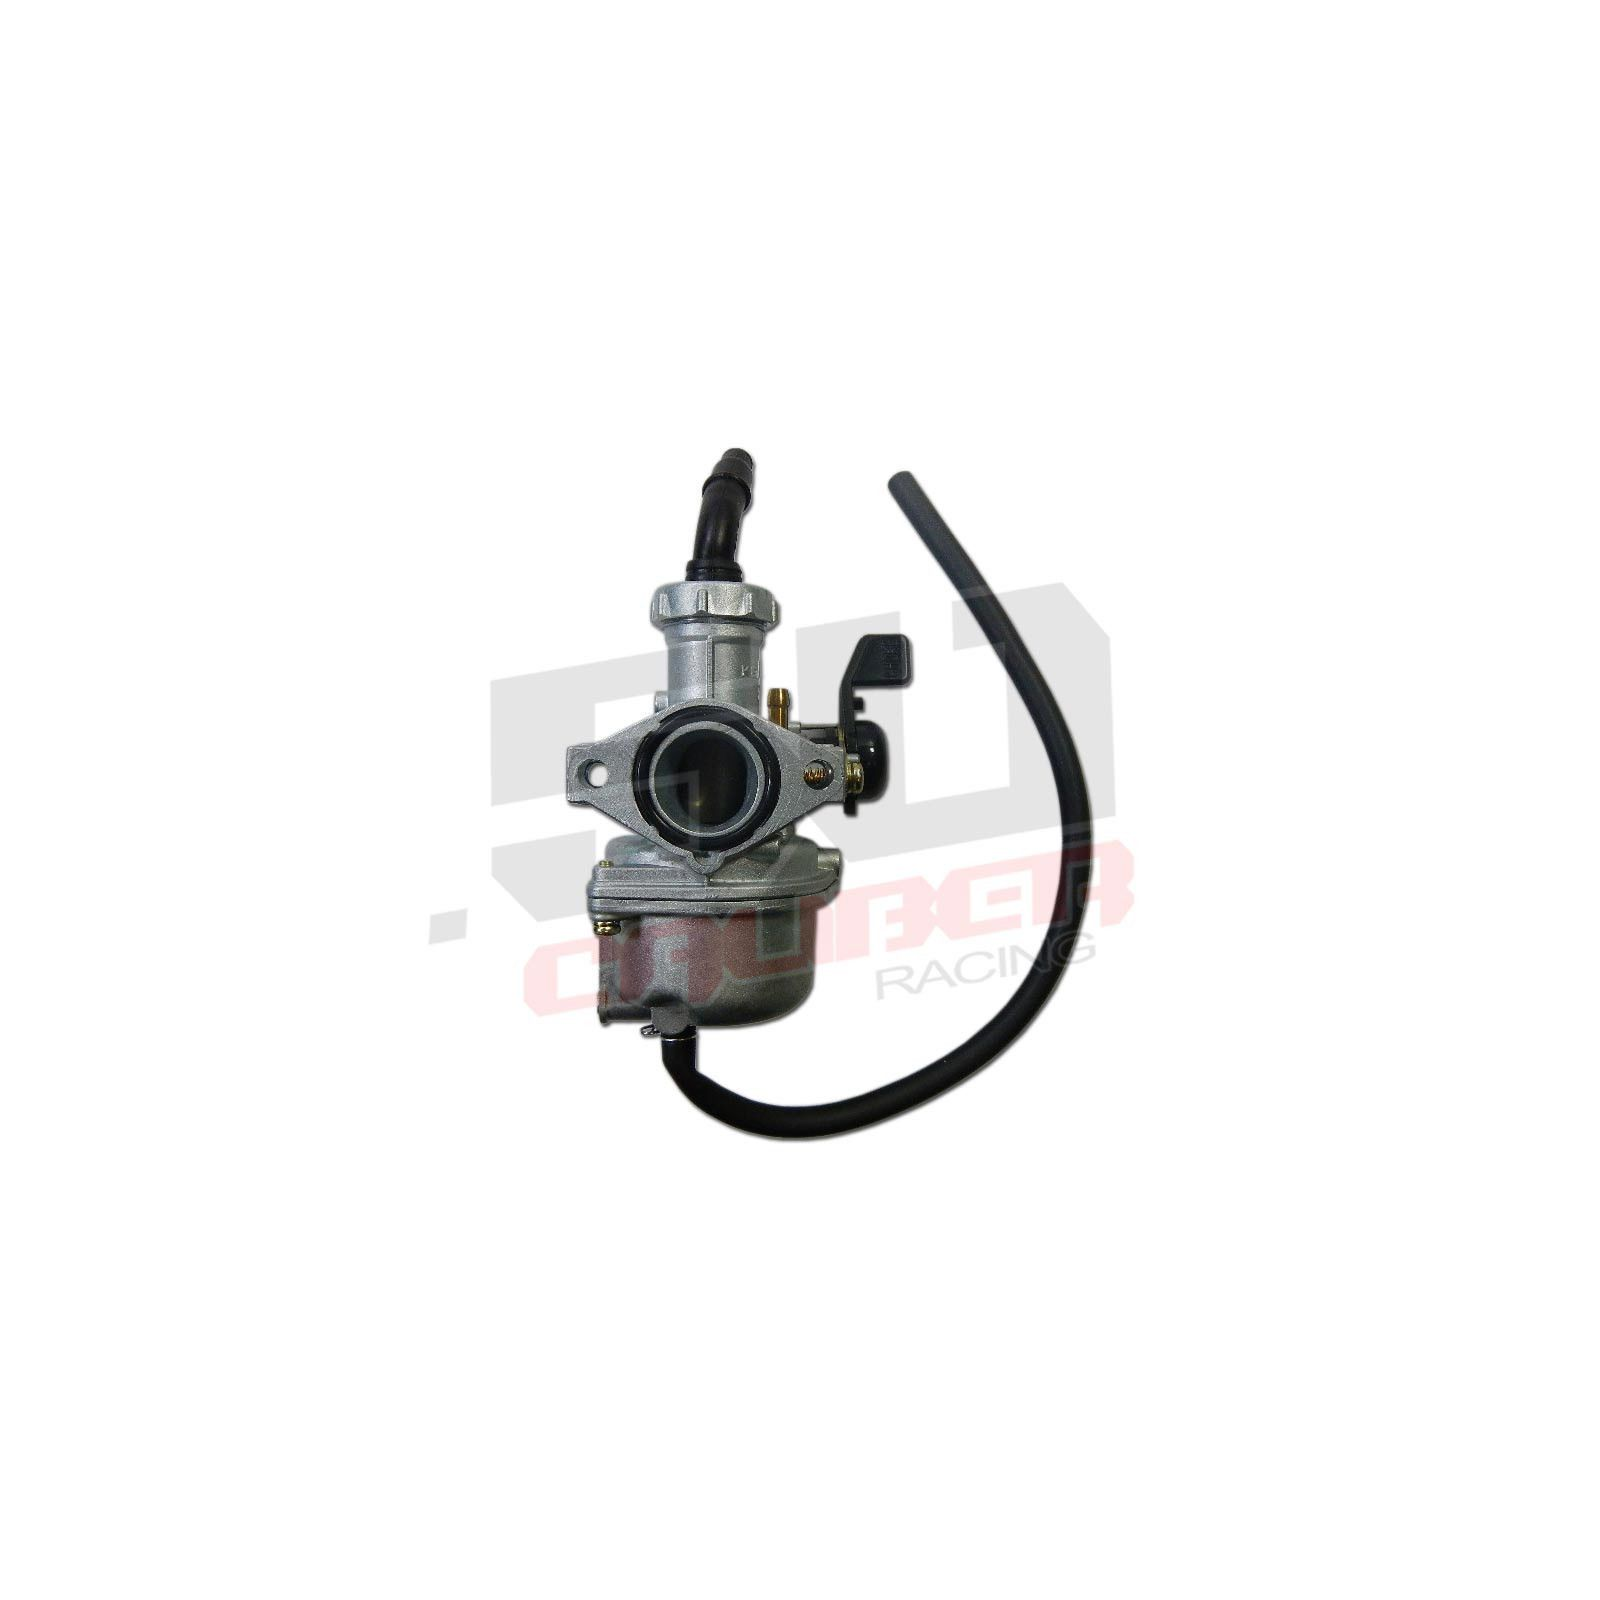 New Replacement Carburetor Kawasaki KLX 110 PIt Bike